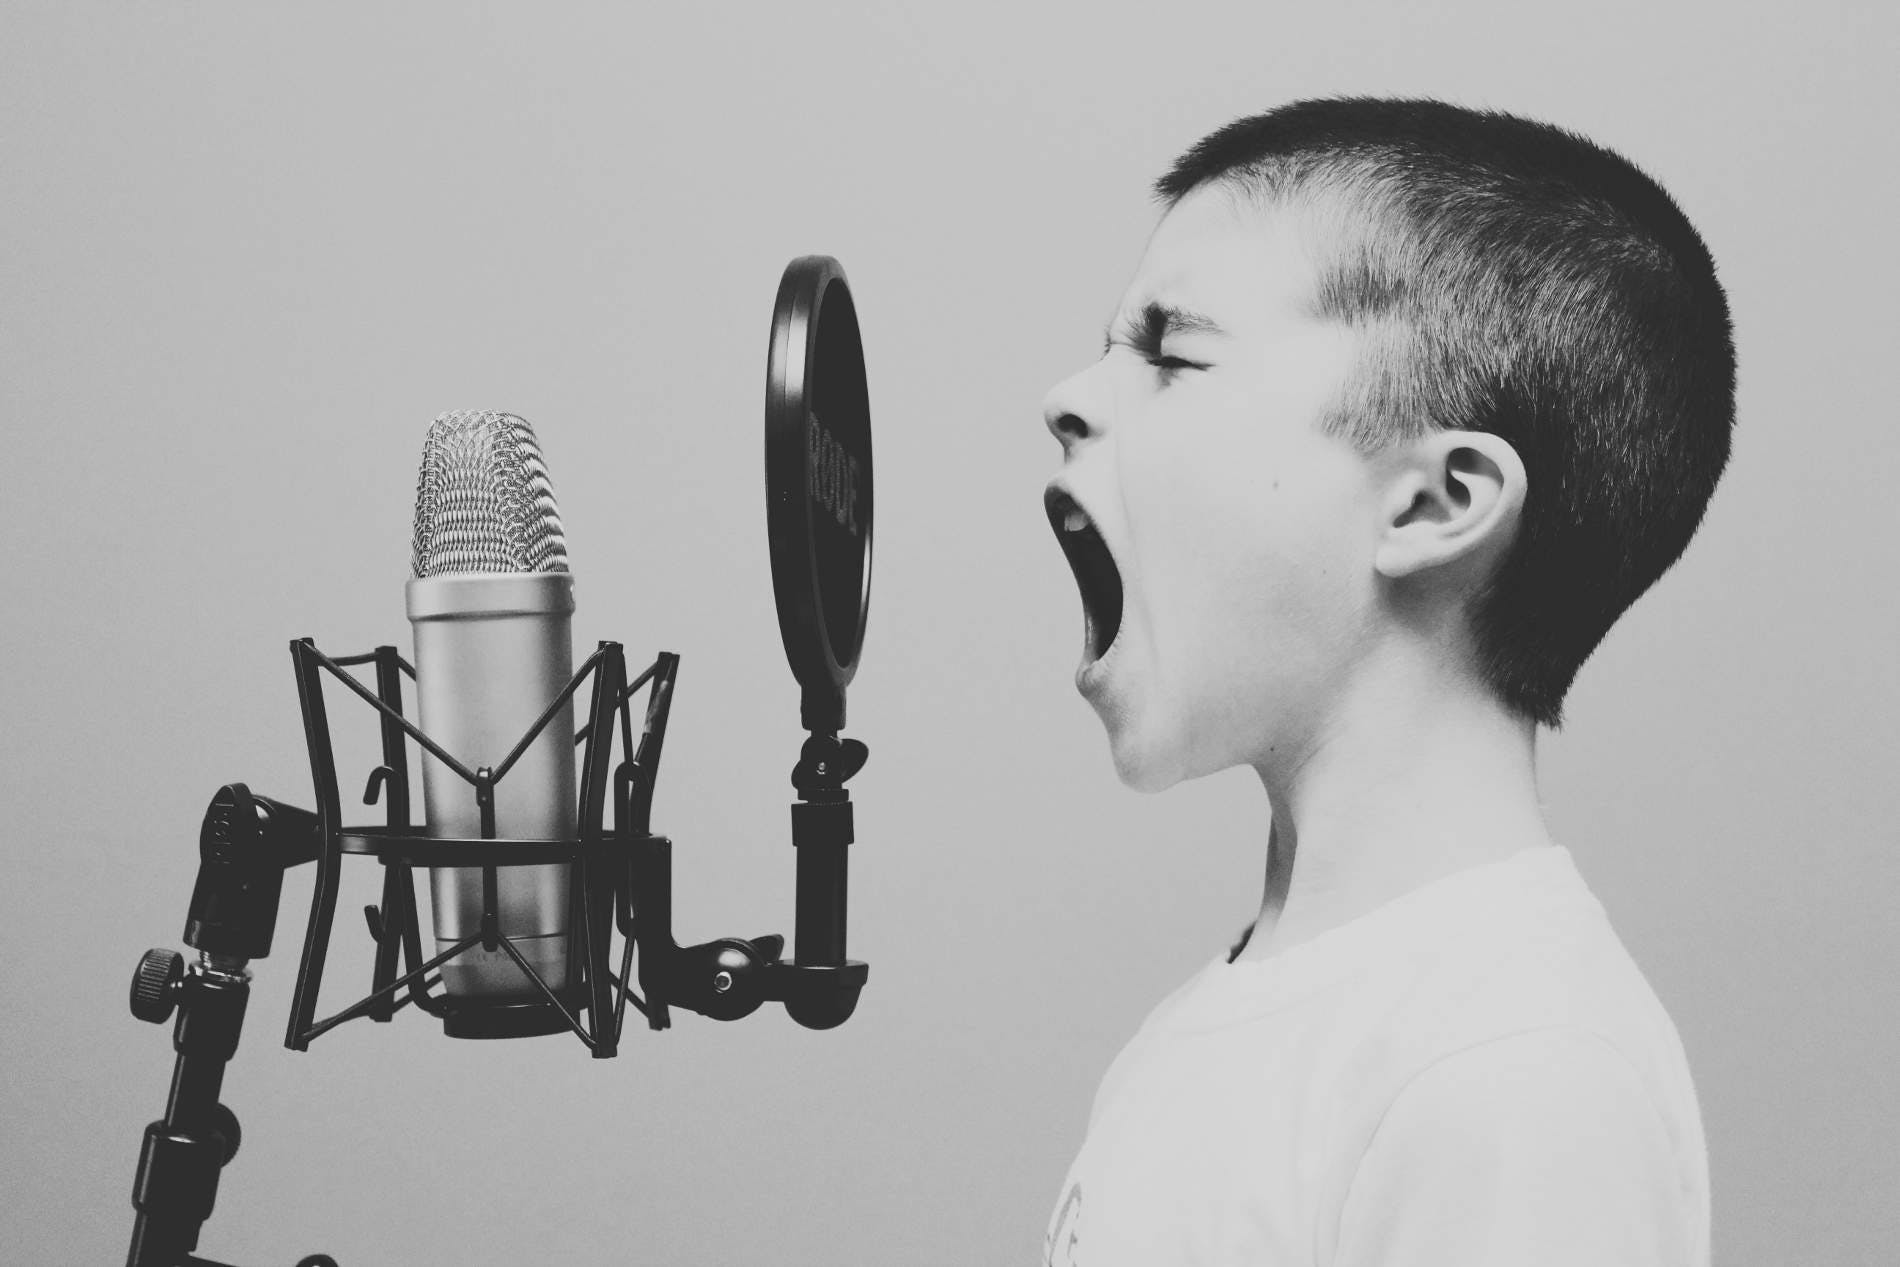 young boy singing into studio microphone